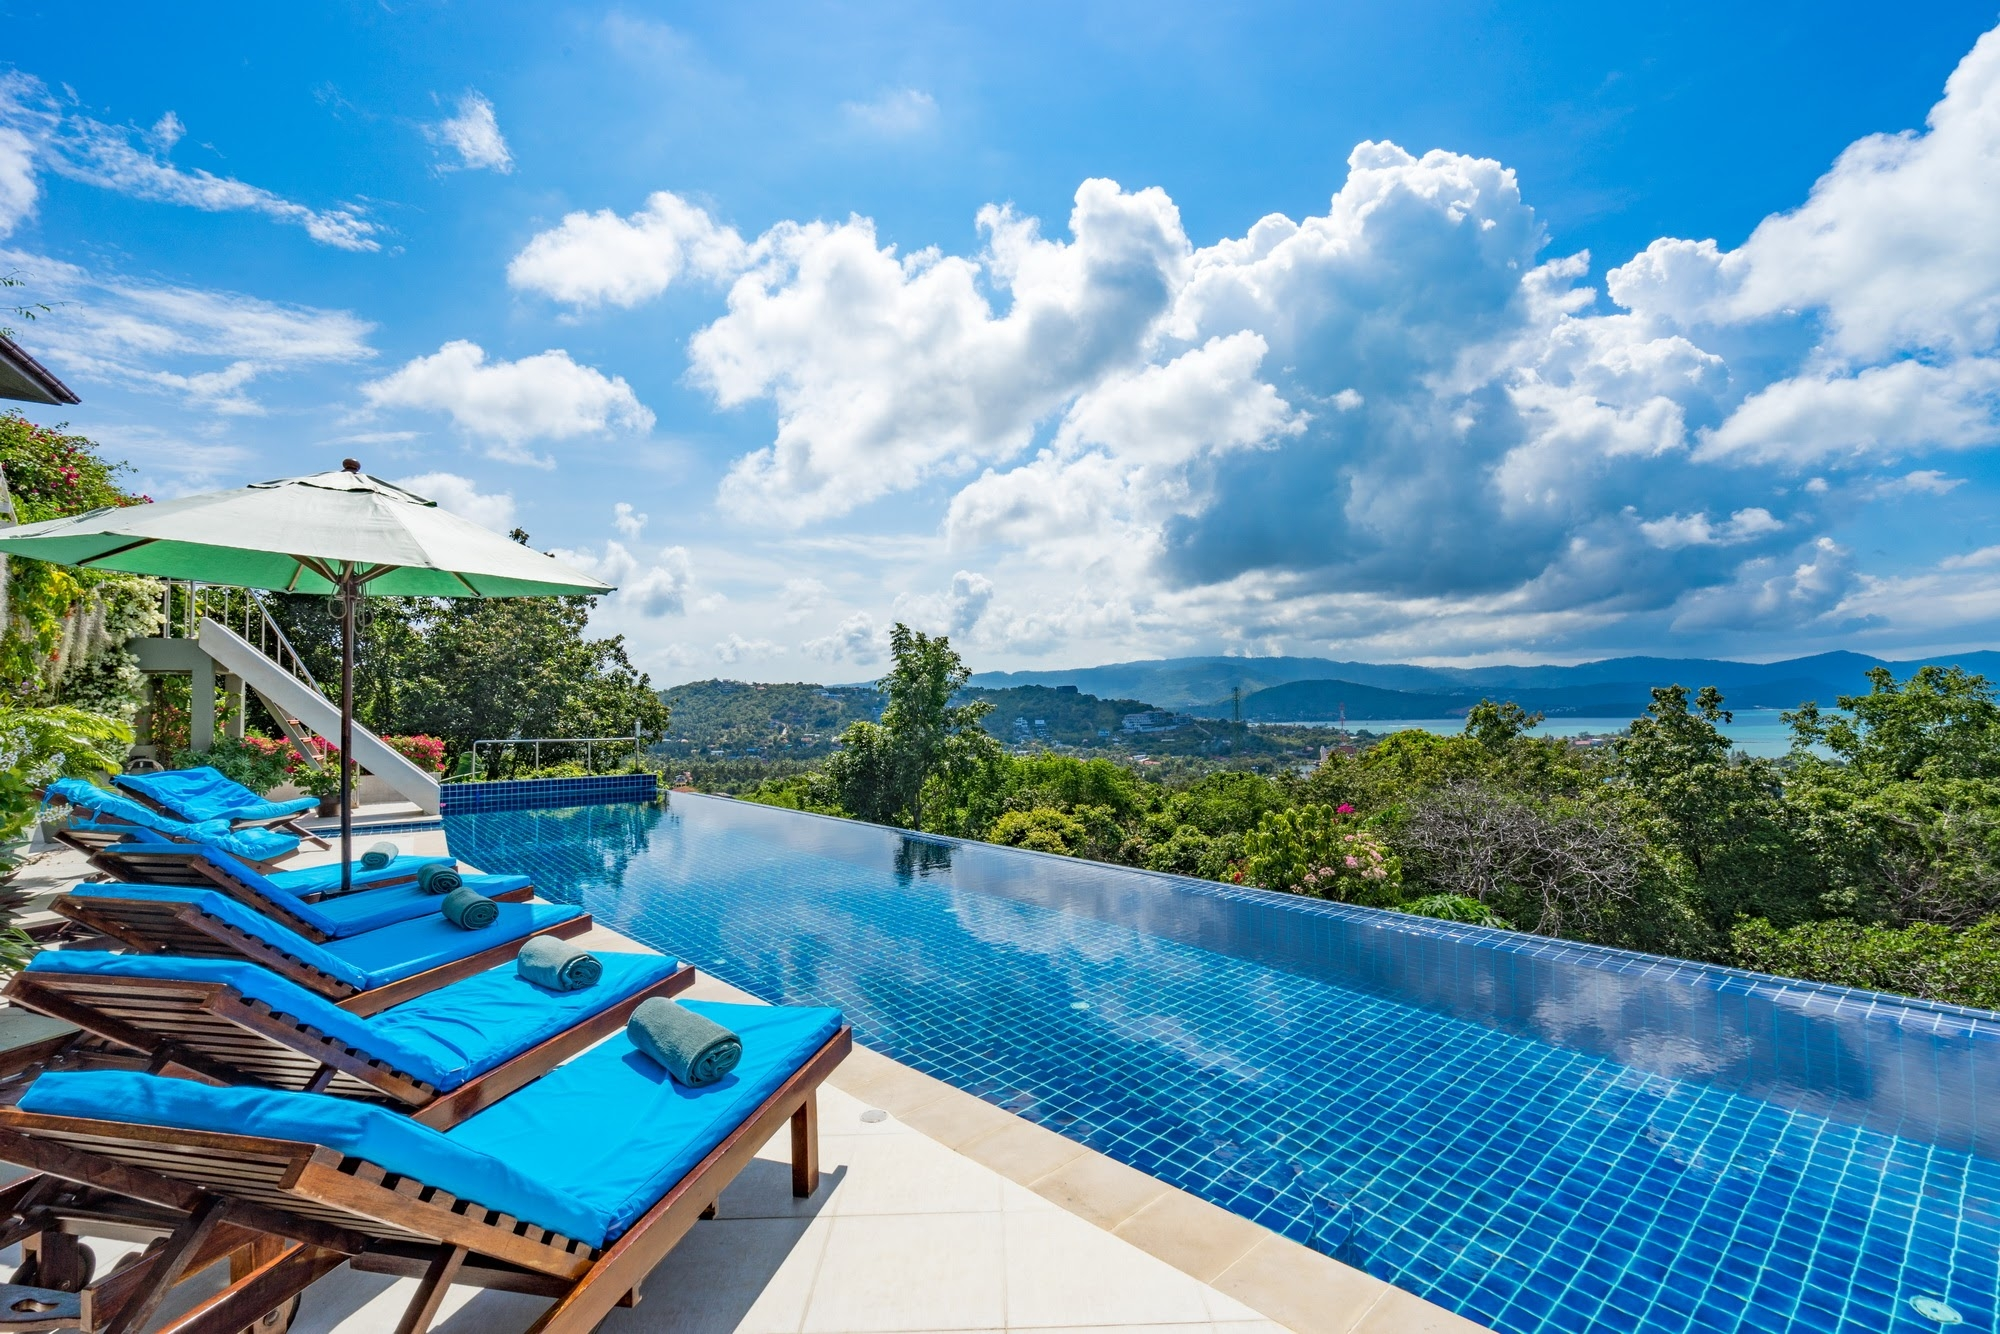 Koh+Samui+Vacation+Villa+Pool+Sea+View+(4).jpg